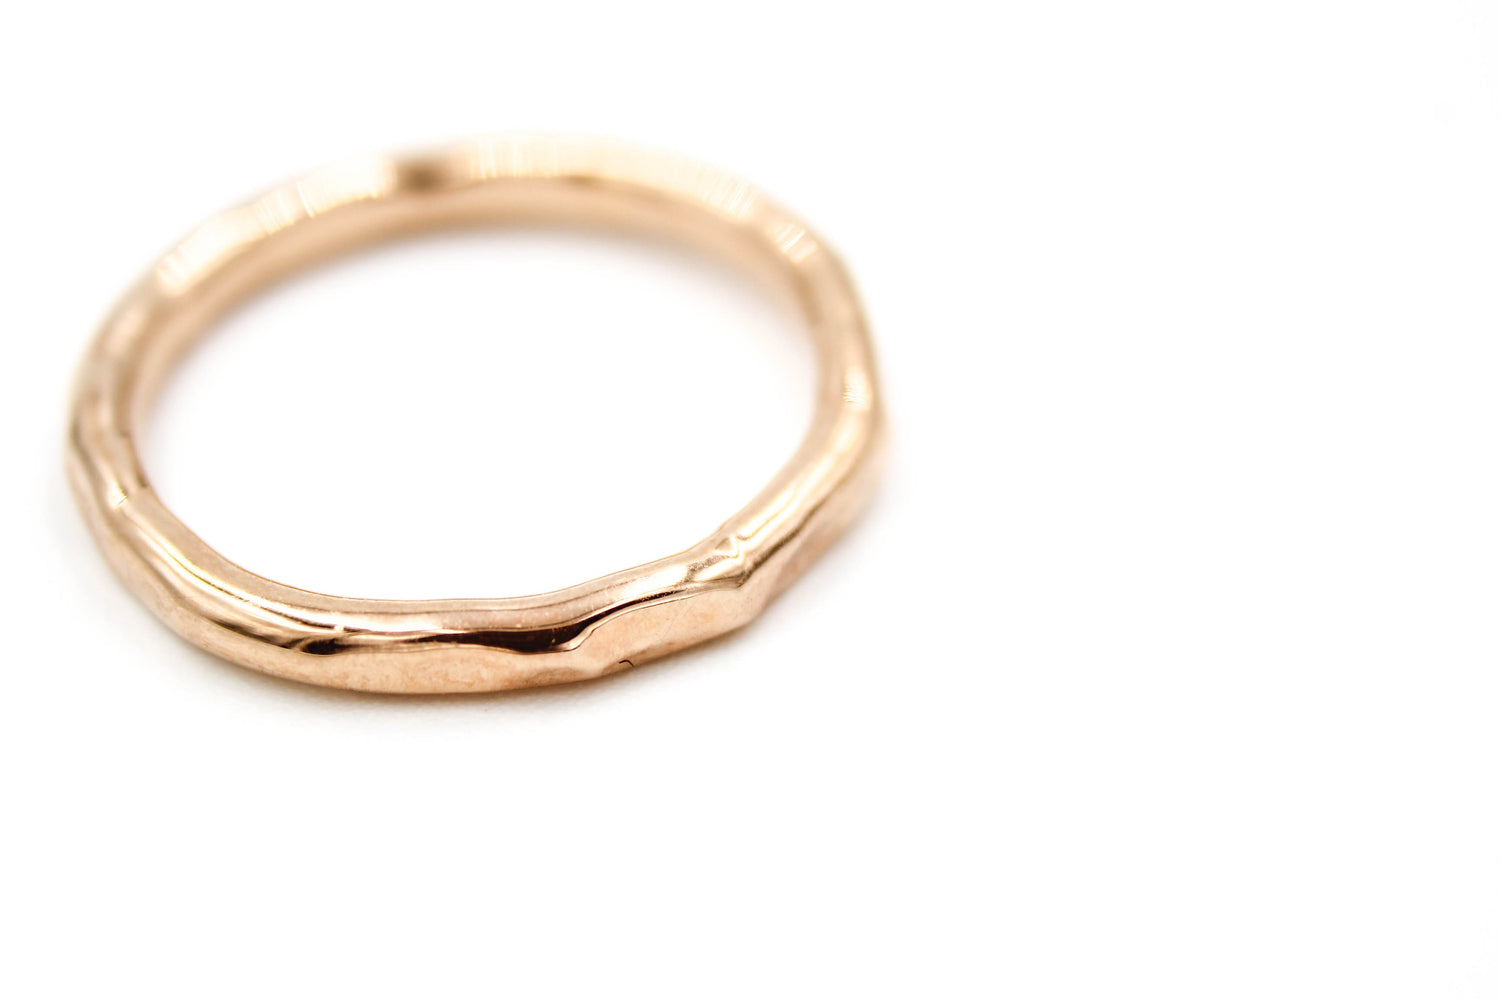 The Little Hammered Band